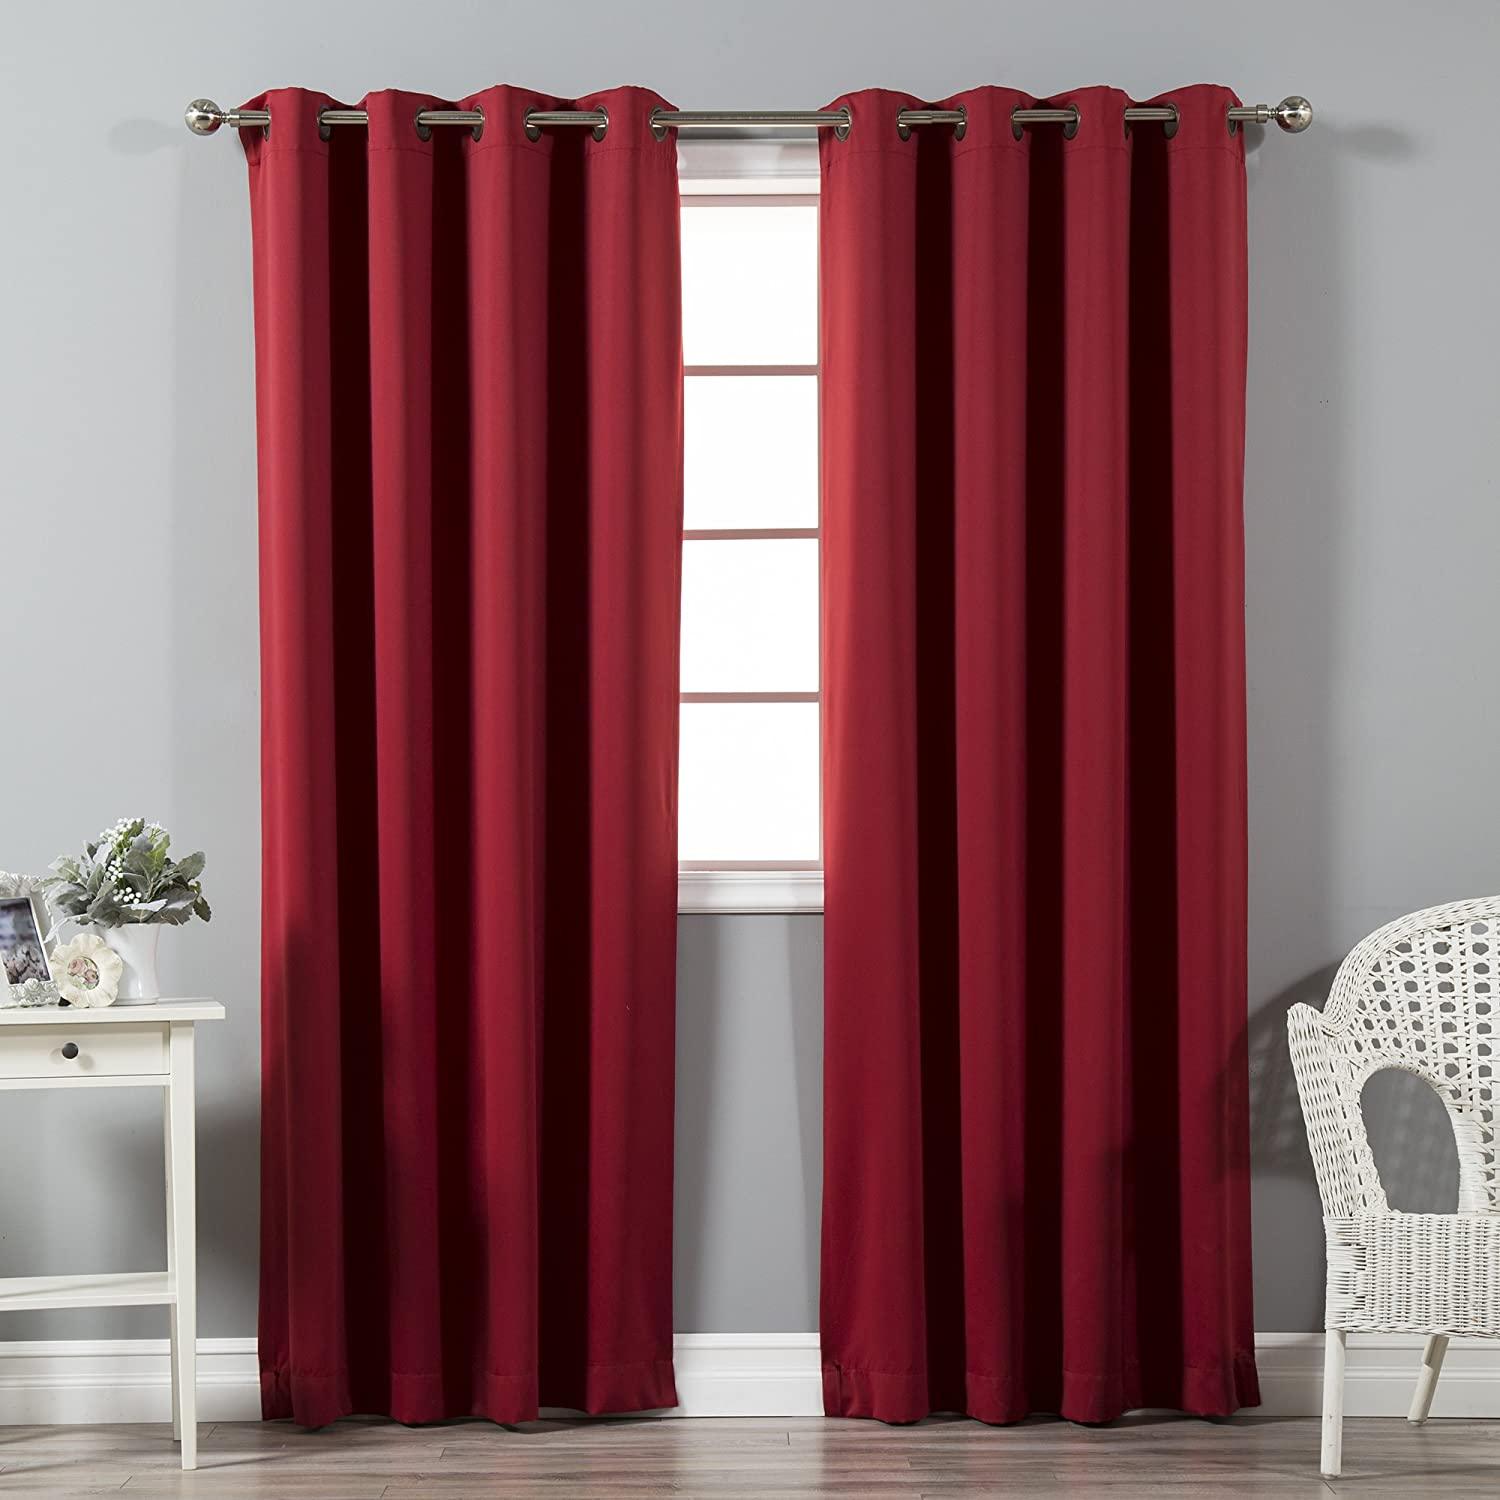 "Best Home Fashion Premium Thermal Insulated Blackout Curtain - Antique Bronze Grommet Top - Cardinal Red - 52"" W x 96"" L - Tie Backs Included (Set of 2 Panels)"